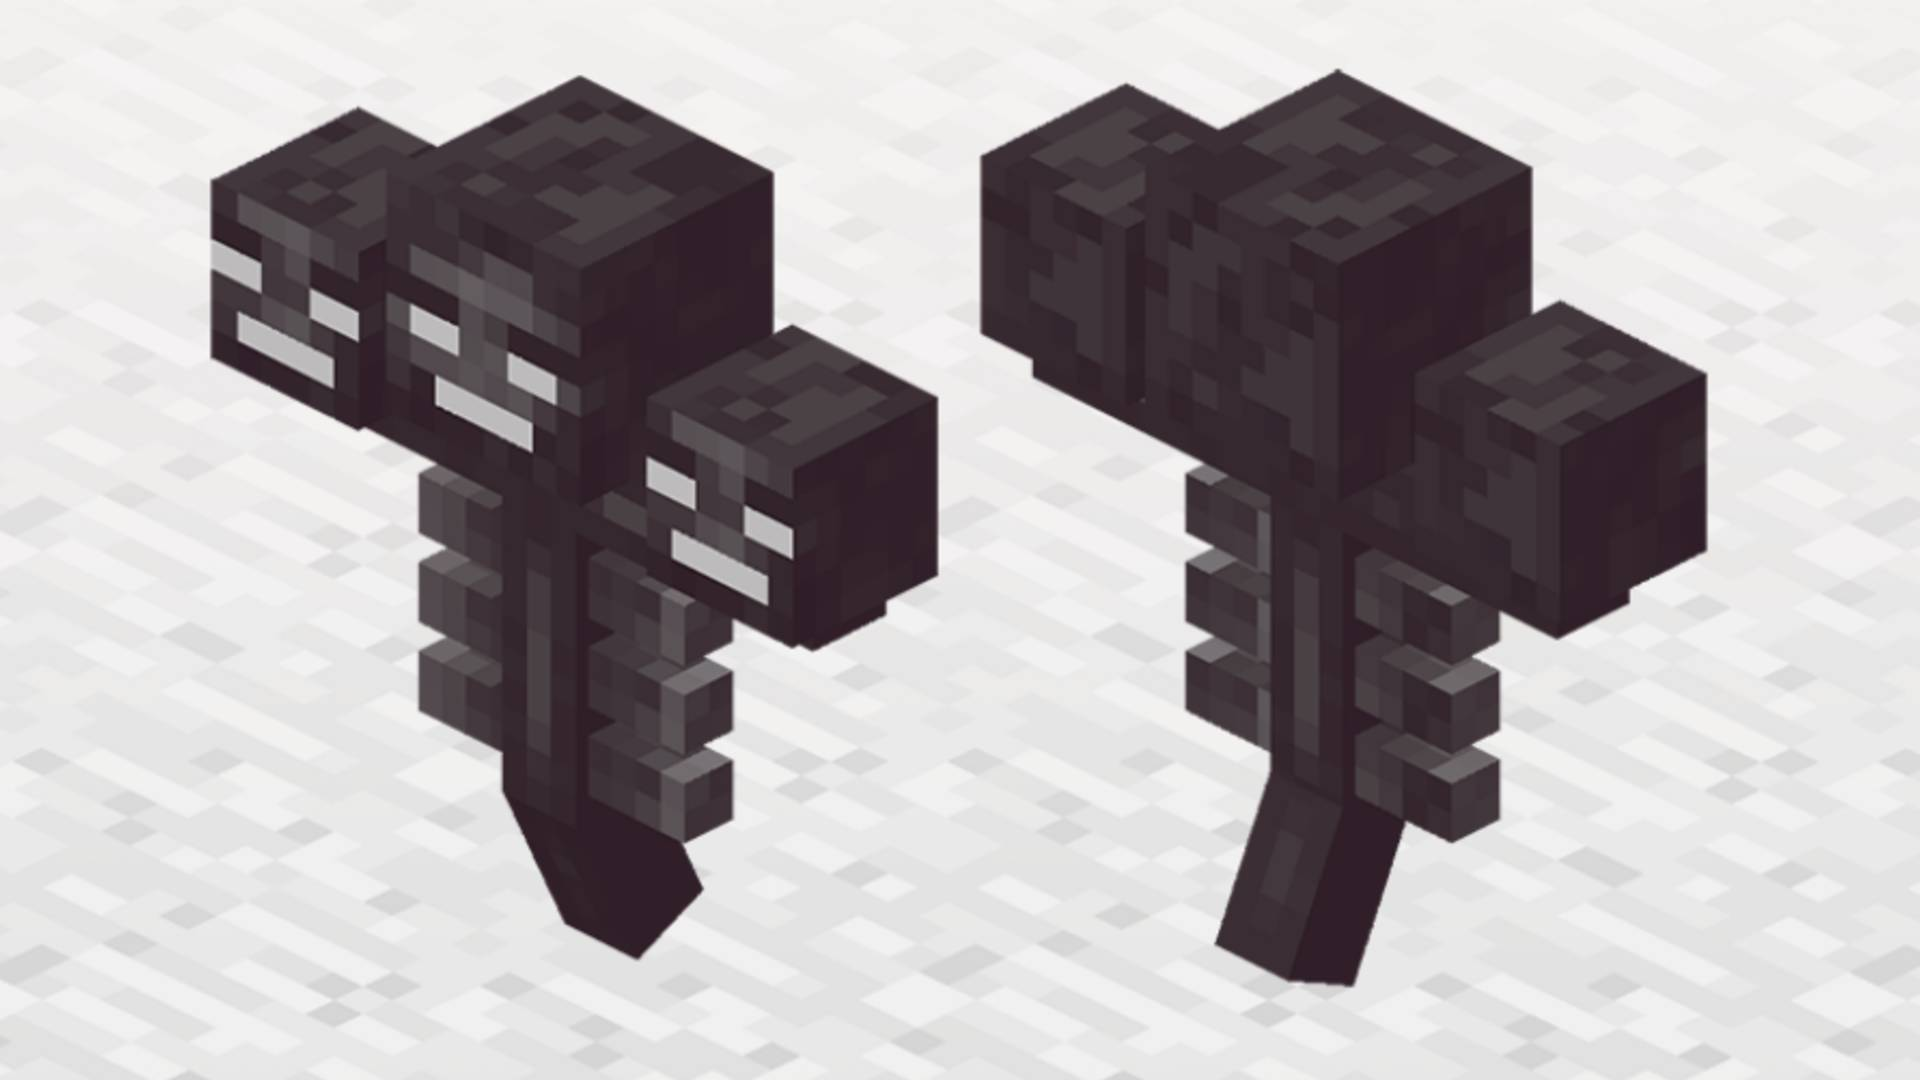 Minecraft wither: how to spawn and defeat the wither boss